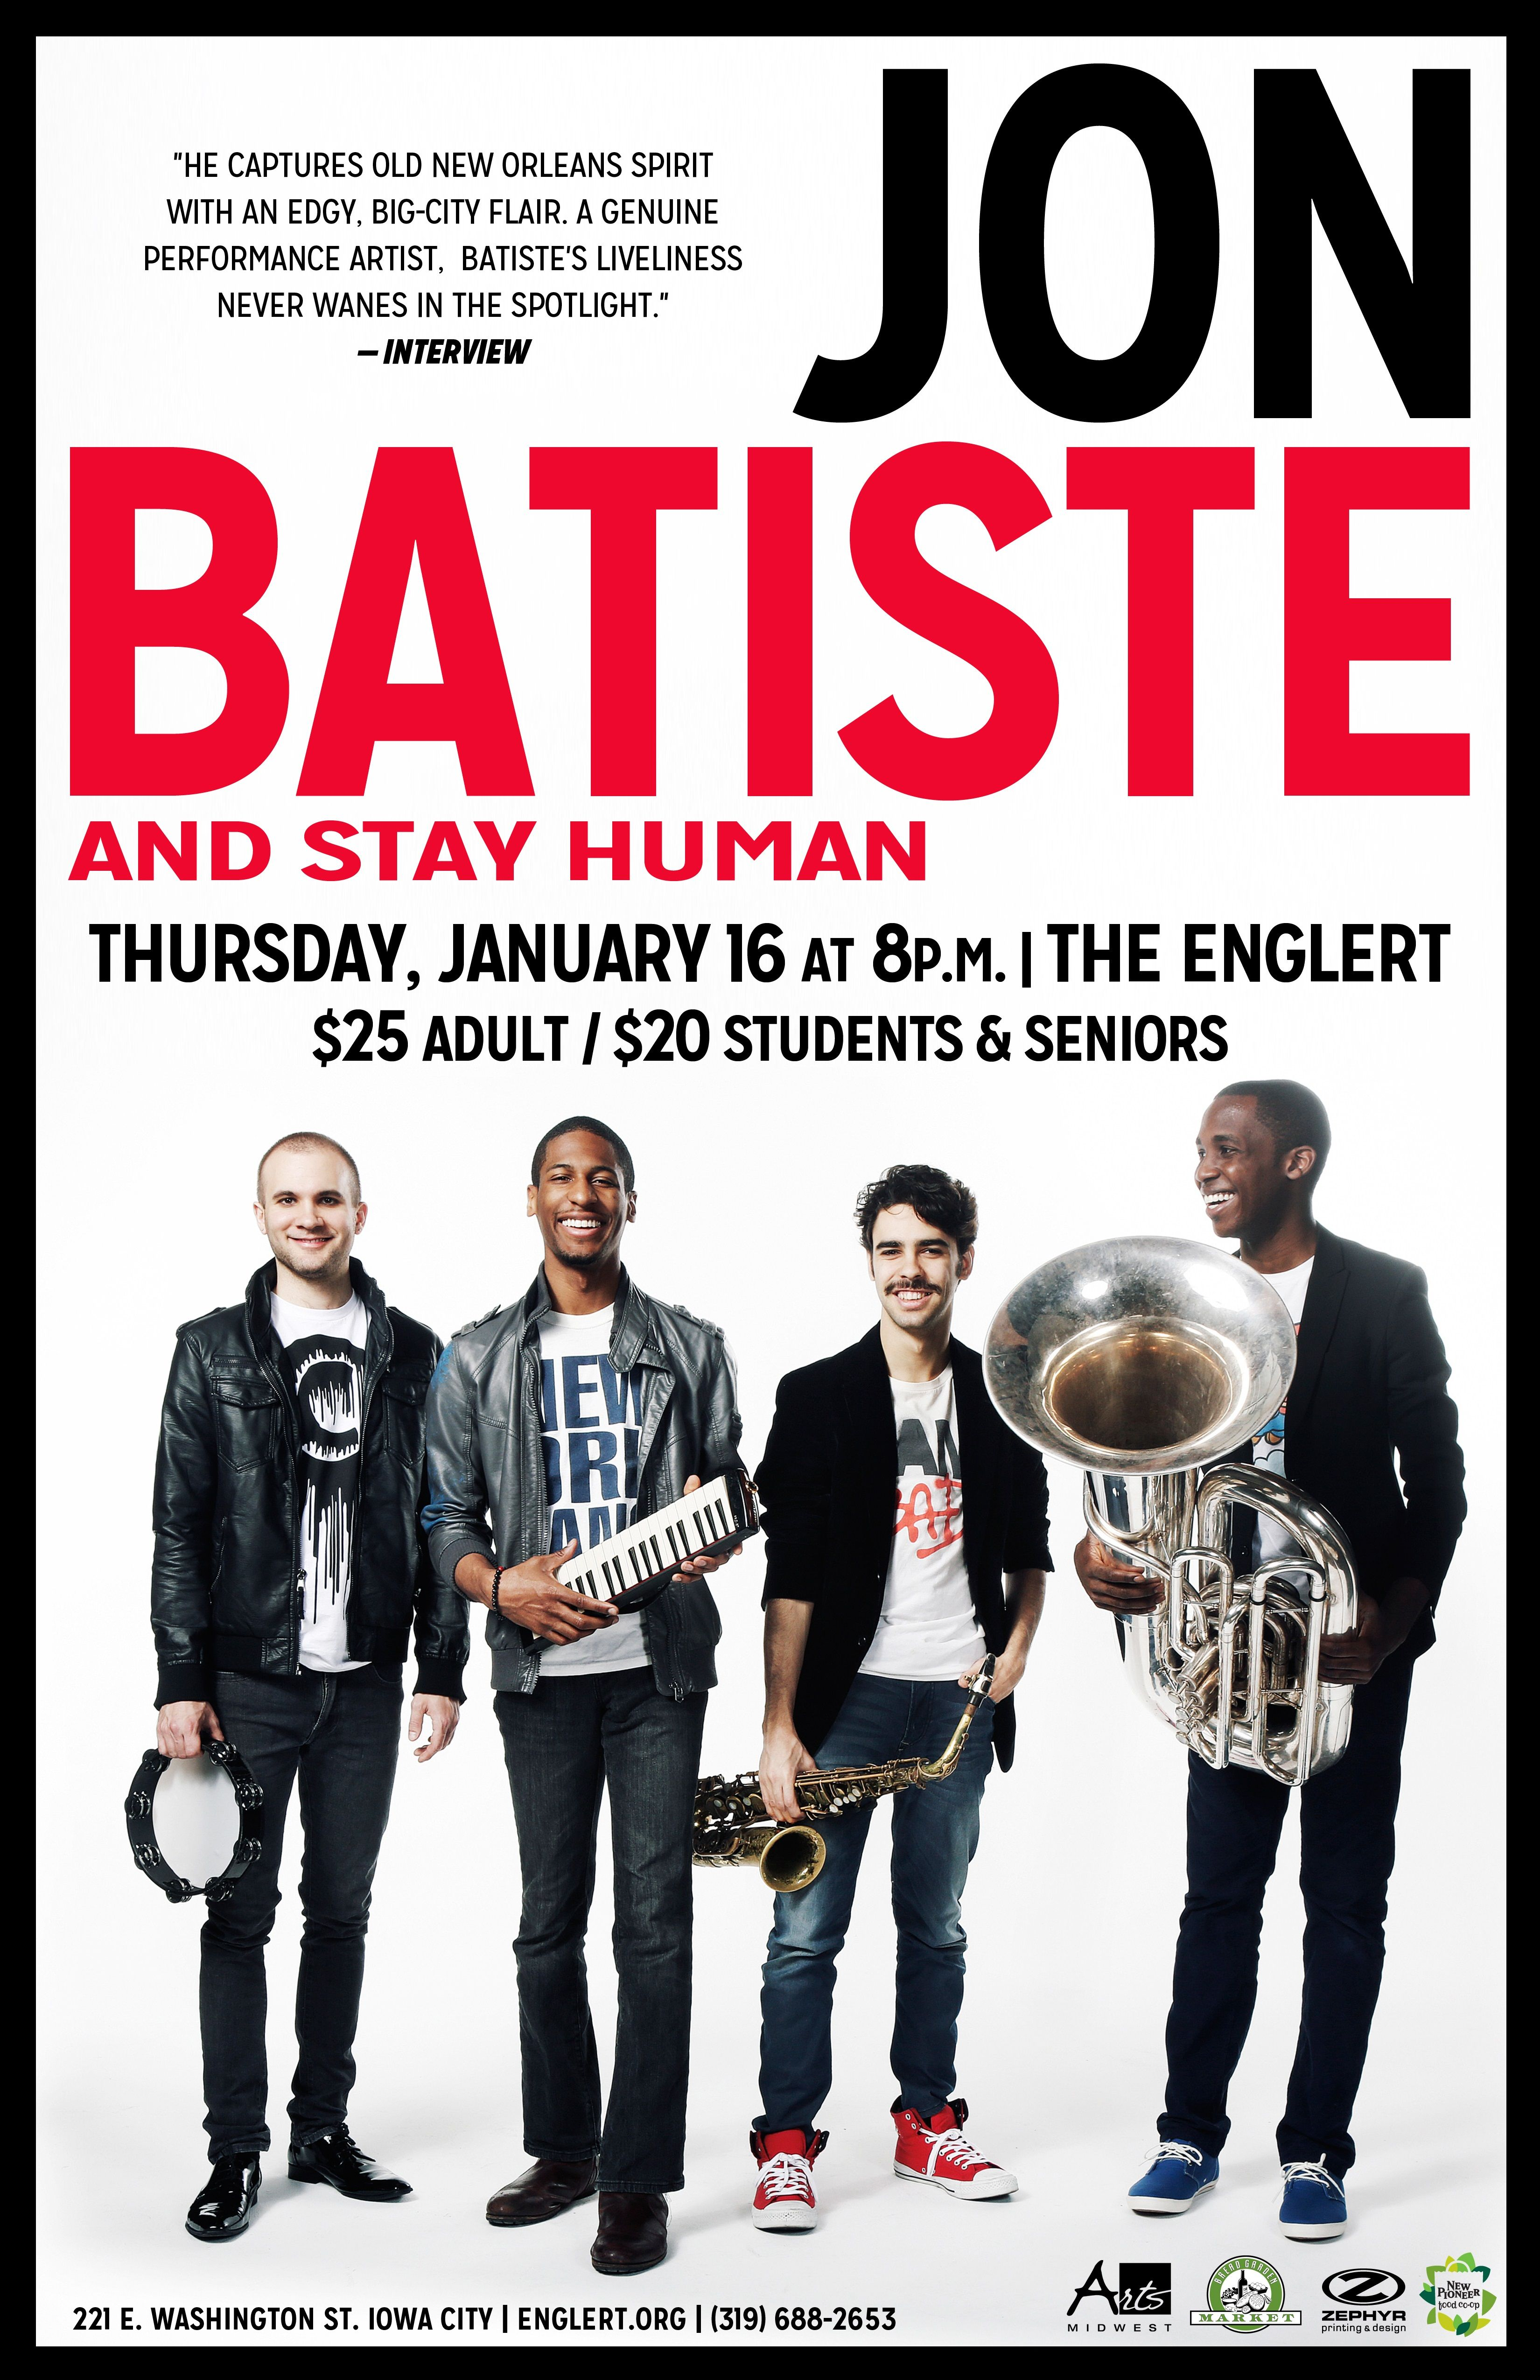 Jon Batiste and Stay Human 1/16/14 | Show Posters | Pinterest